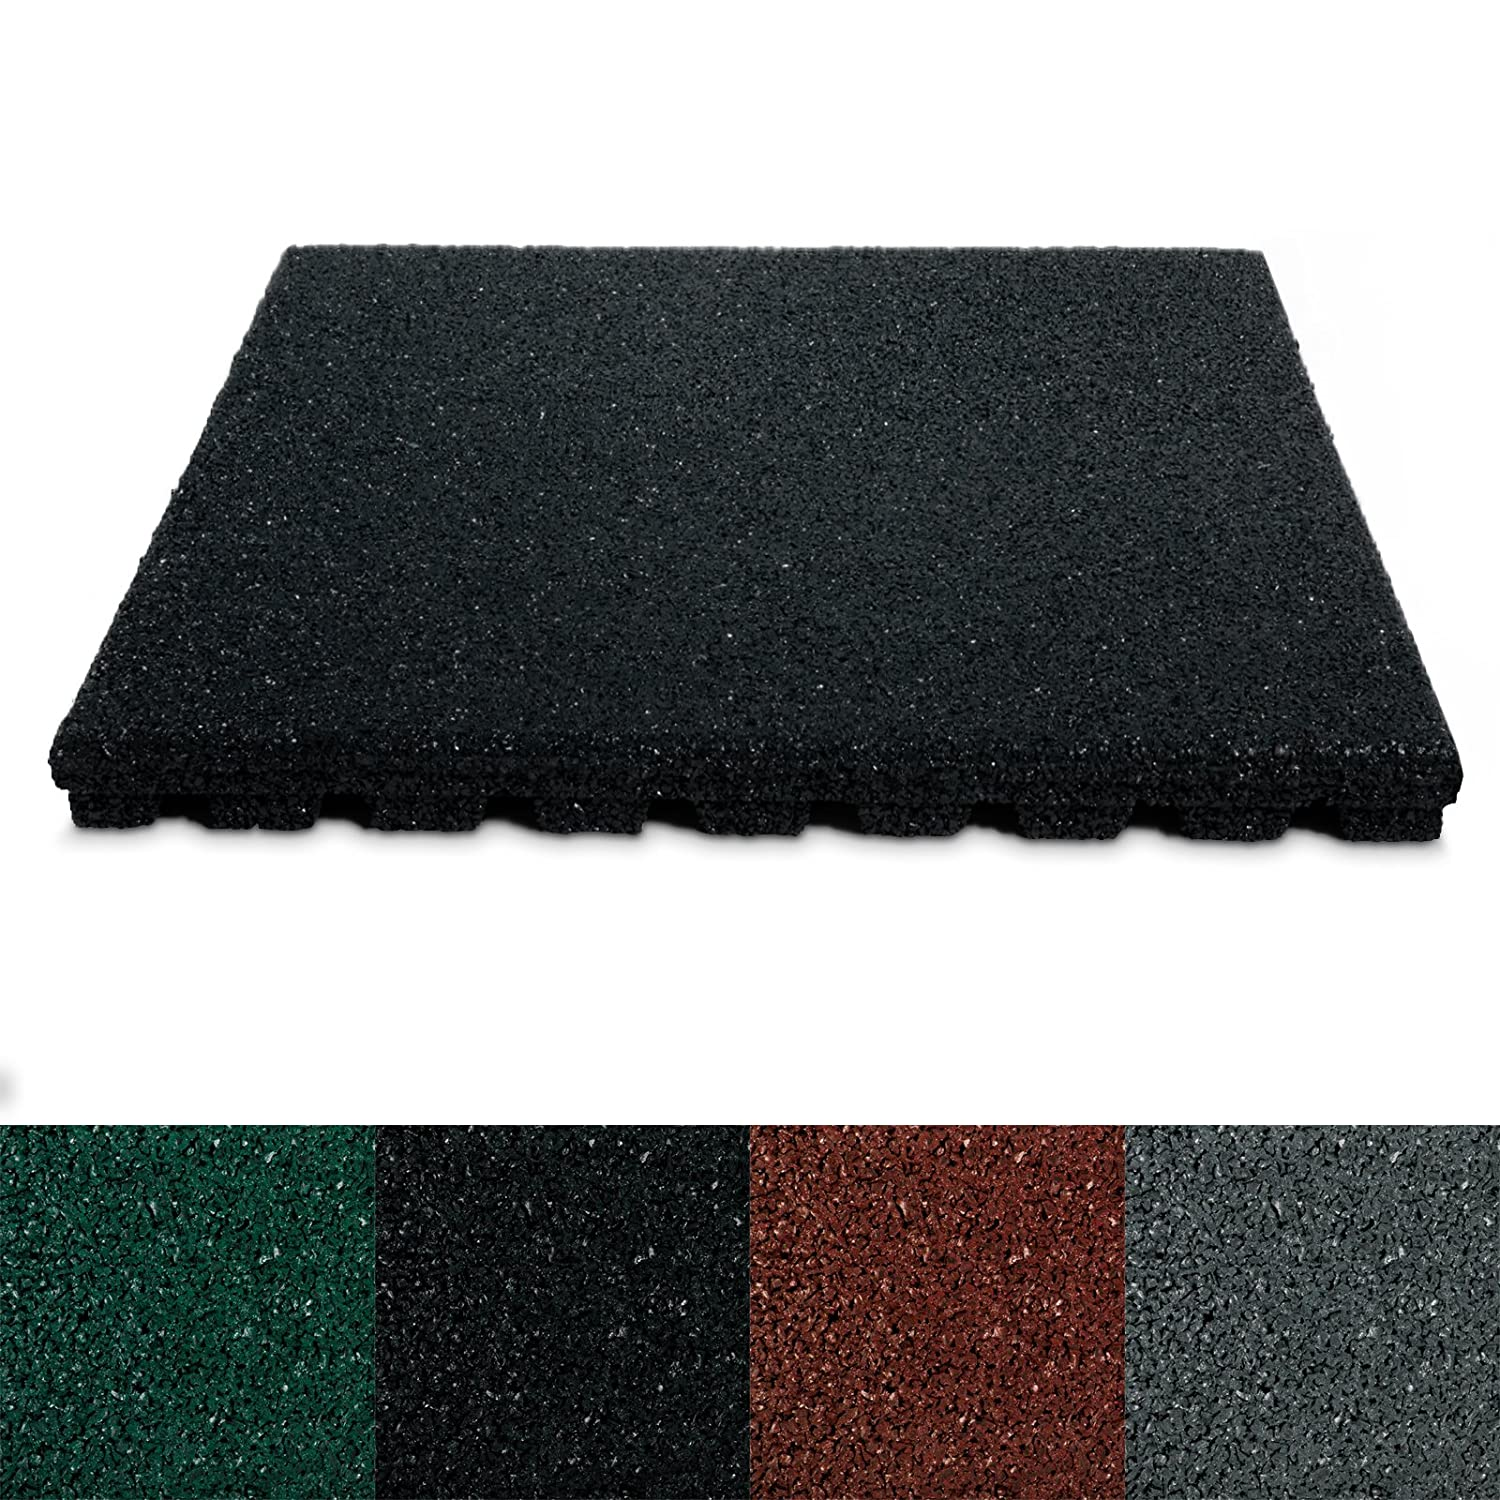 Casa pura Rubber Safety Floor Mats 25 mm   Pack of 4  50x50cm  110 x Cannons UK Rubber Playground Tiles 20mm  30mm or 40mm   Mats  . Outdoor Rubber Tiles Uk. Home Design Ideas